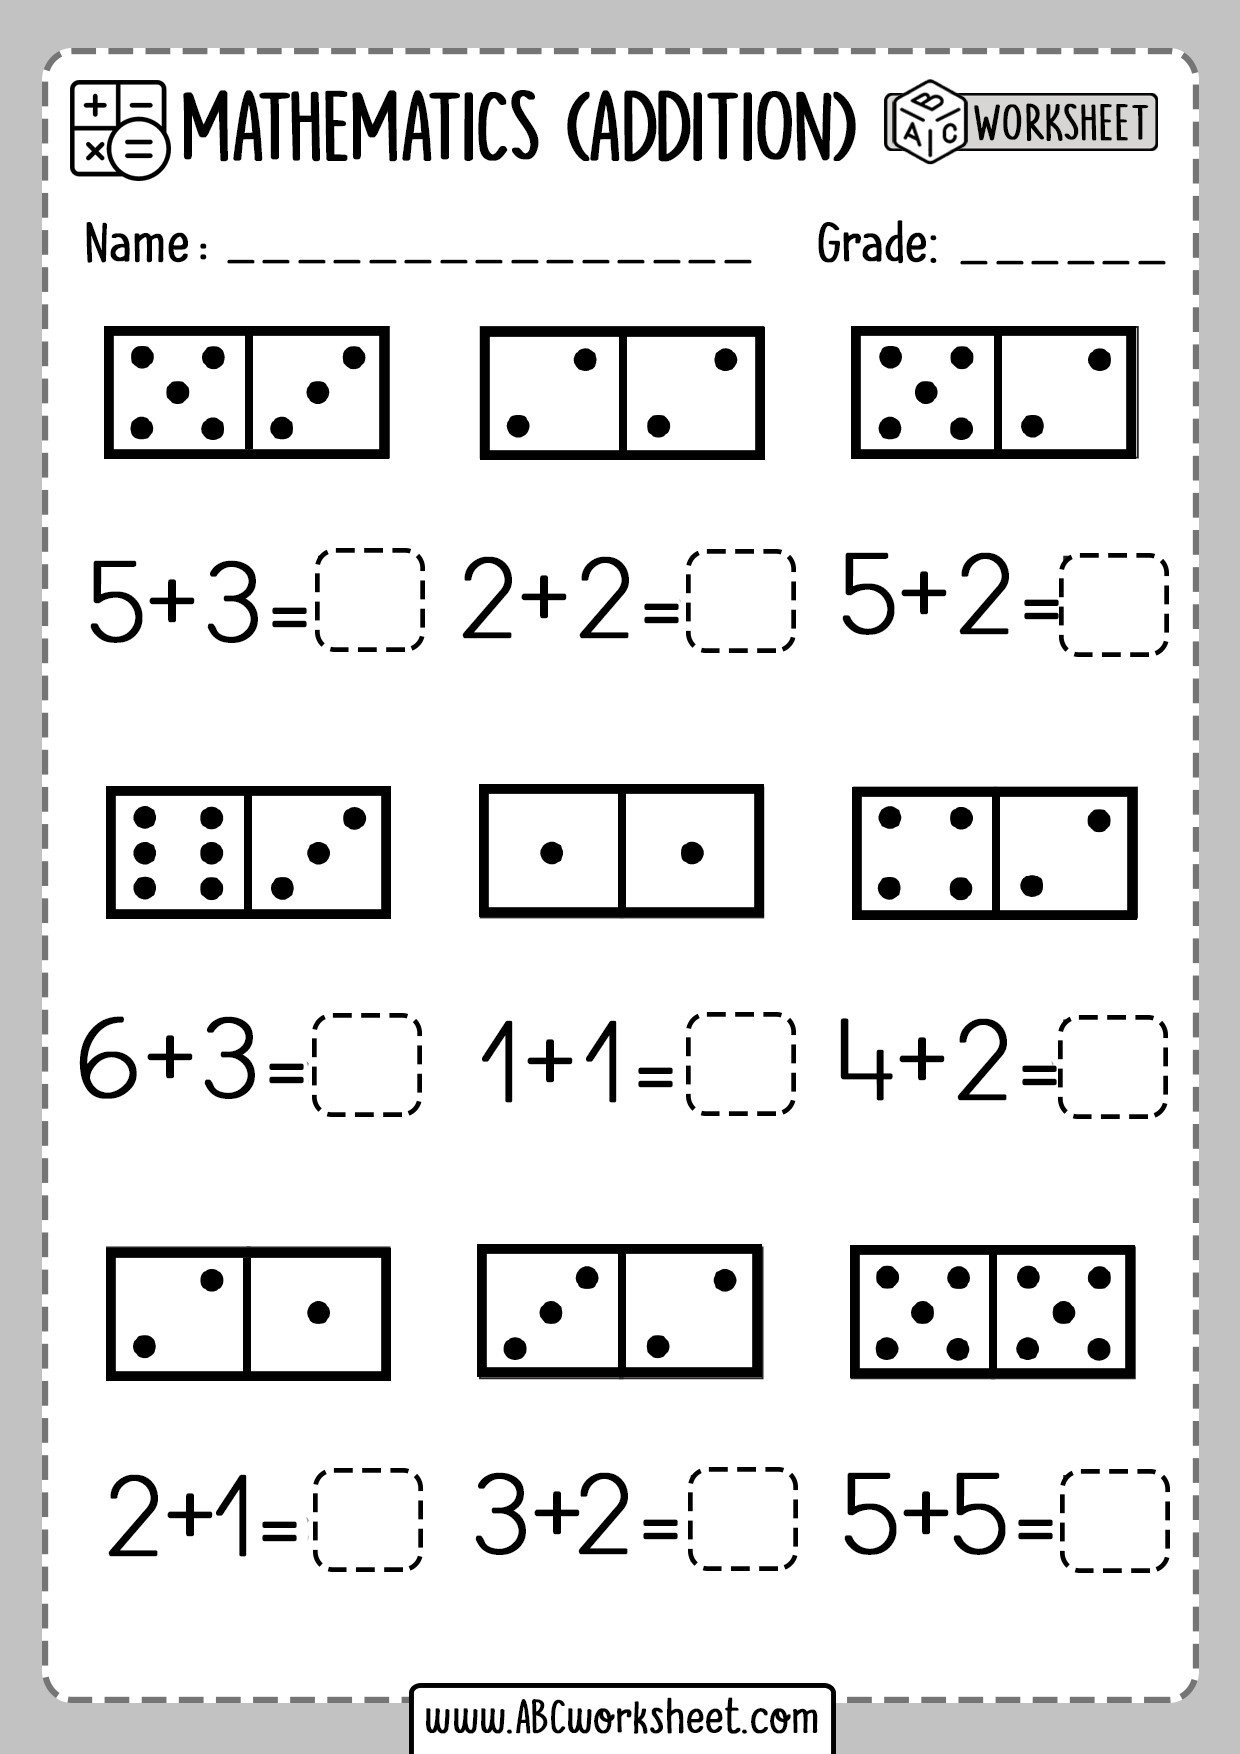 Kindergarten Math Worksheet Addition Math Worksheet Kindergarten Addition Sheets Subtraction